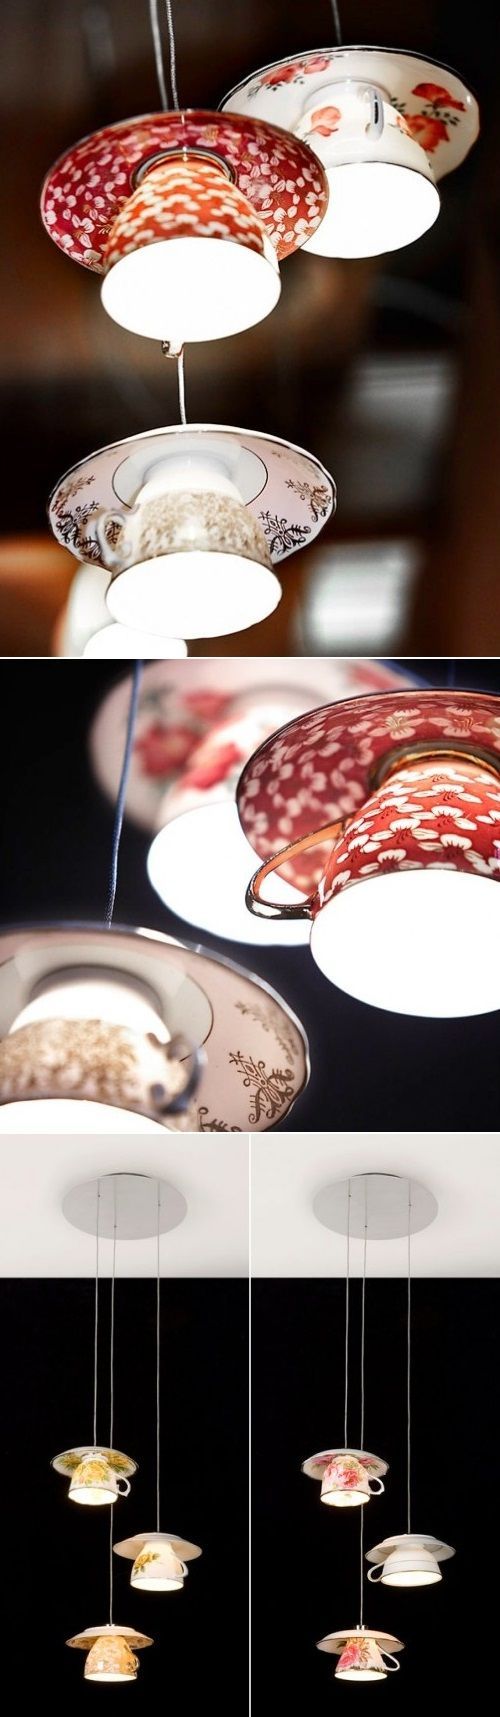 DIY Cozy Lamps. Great way to reuse those cups and saucers lying around! From specialspot.net.